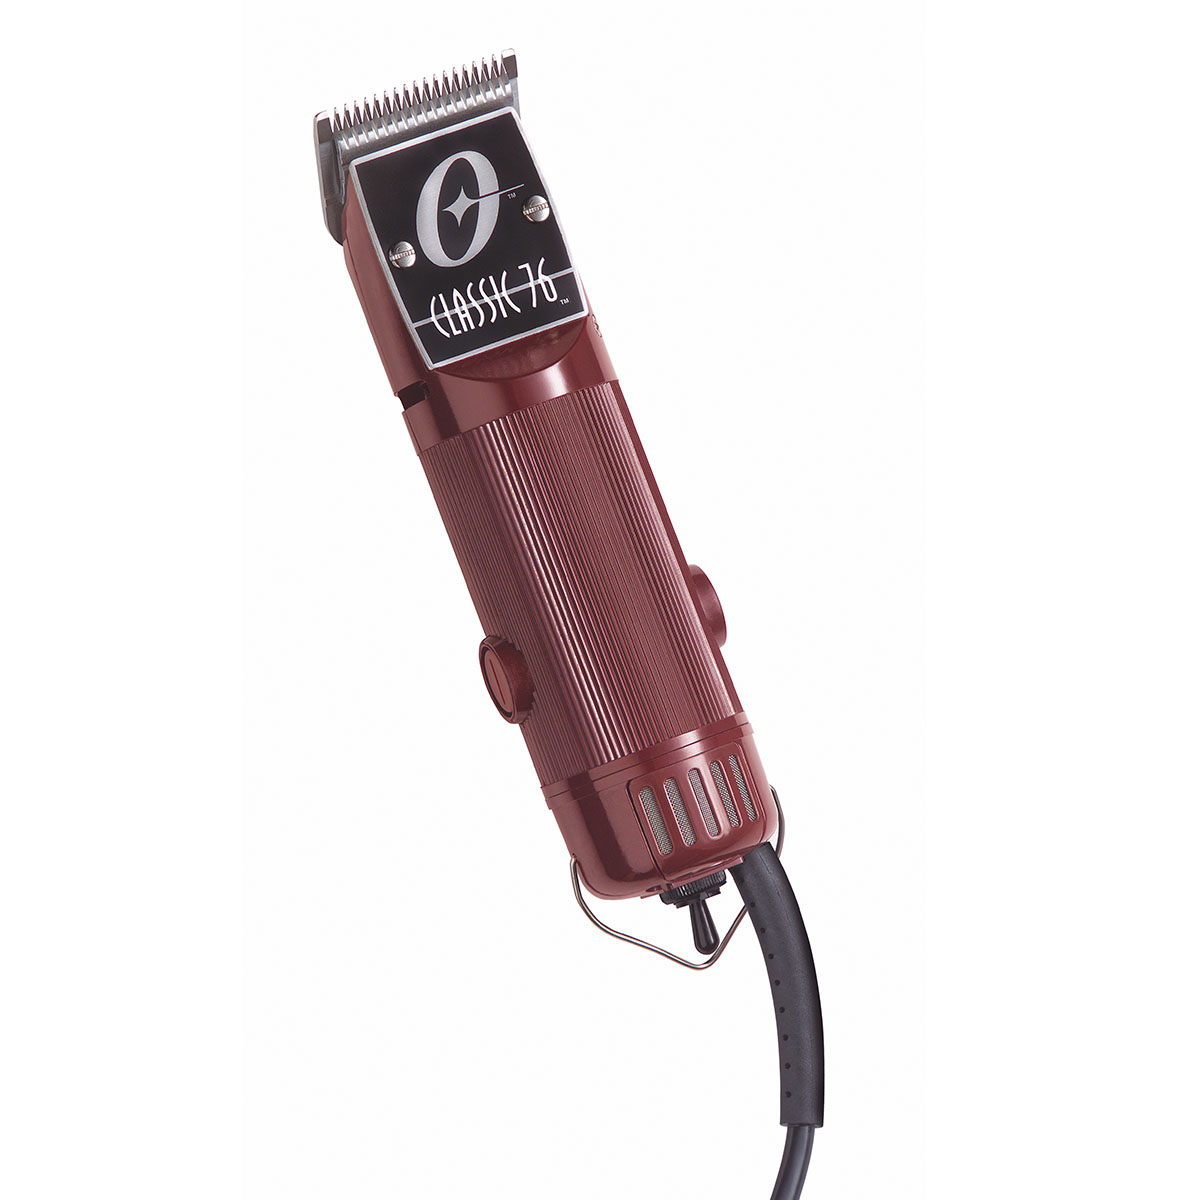 Oster Clic 76 Professional Hair